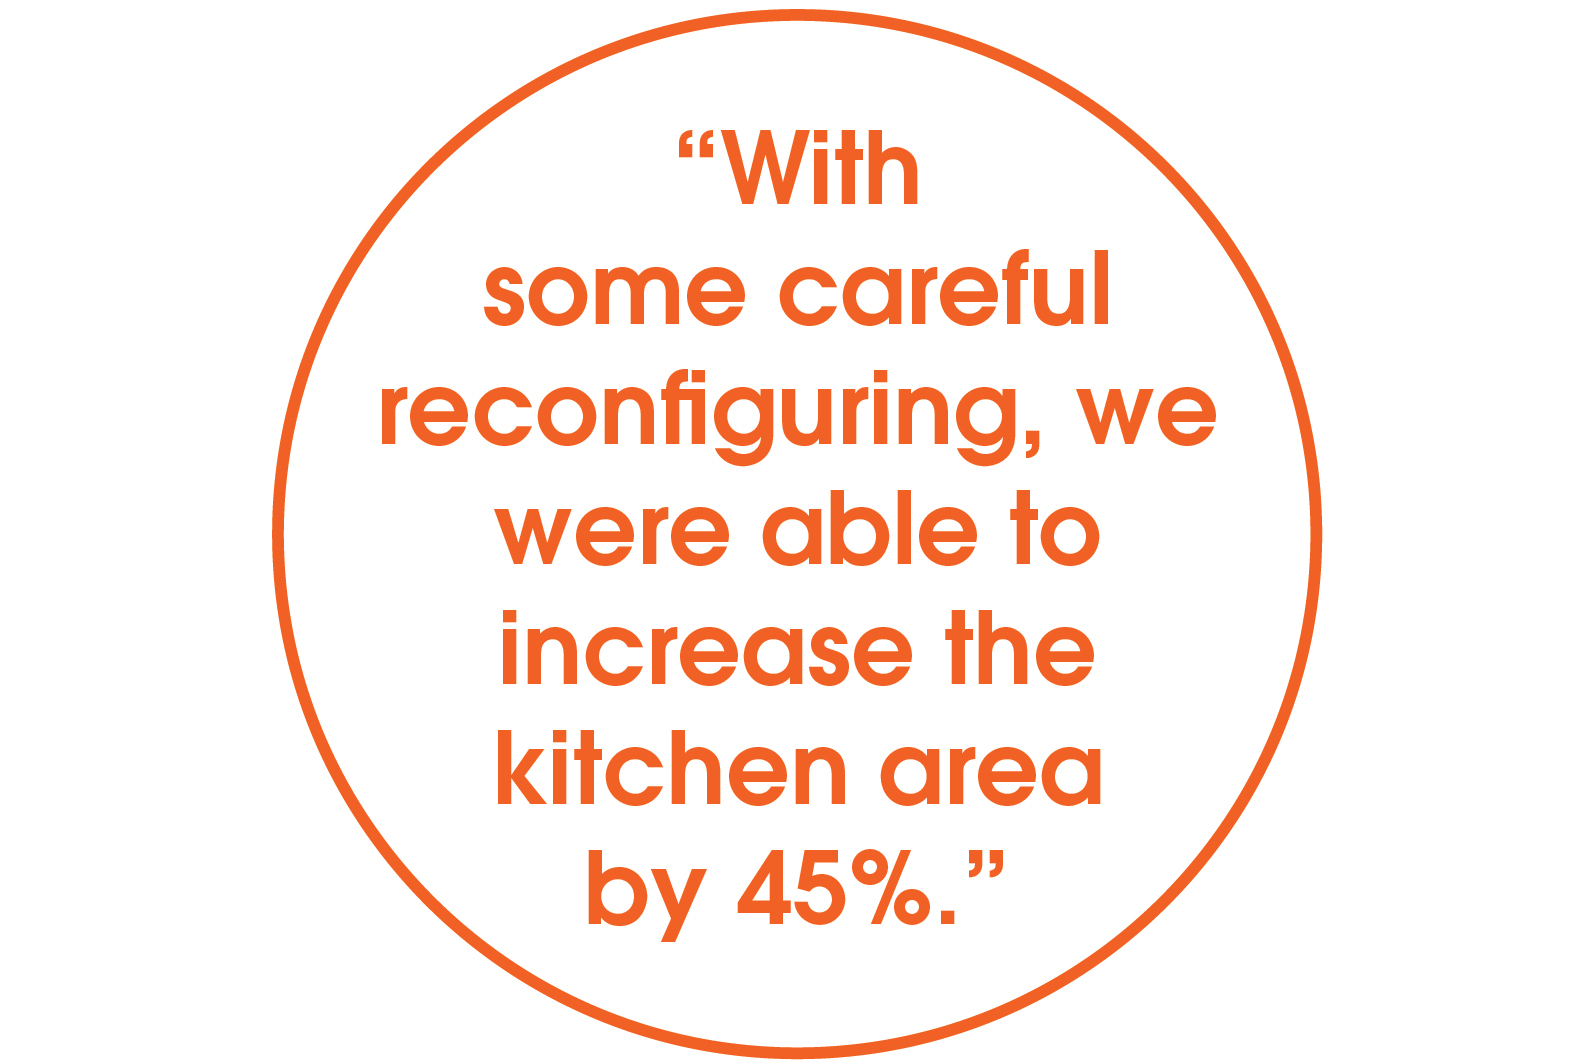 increased kitchen area by 45%